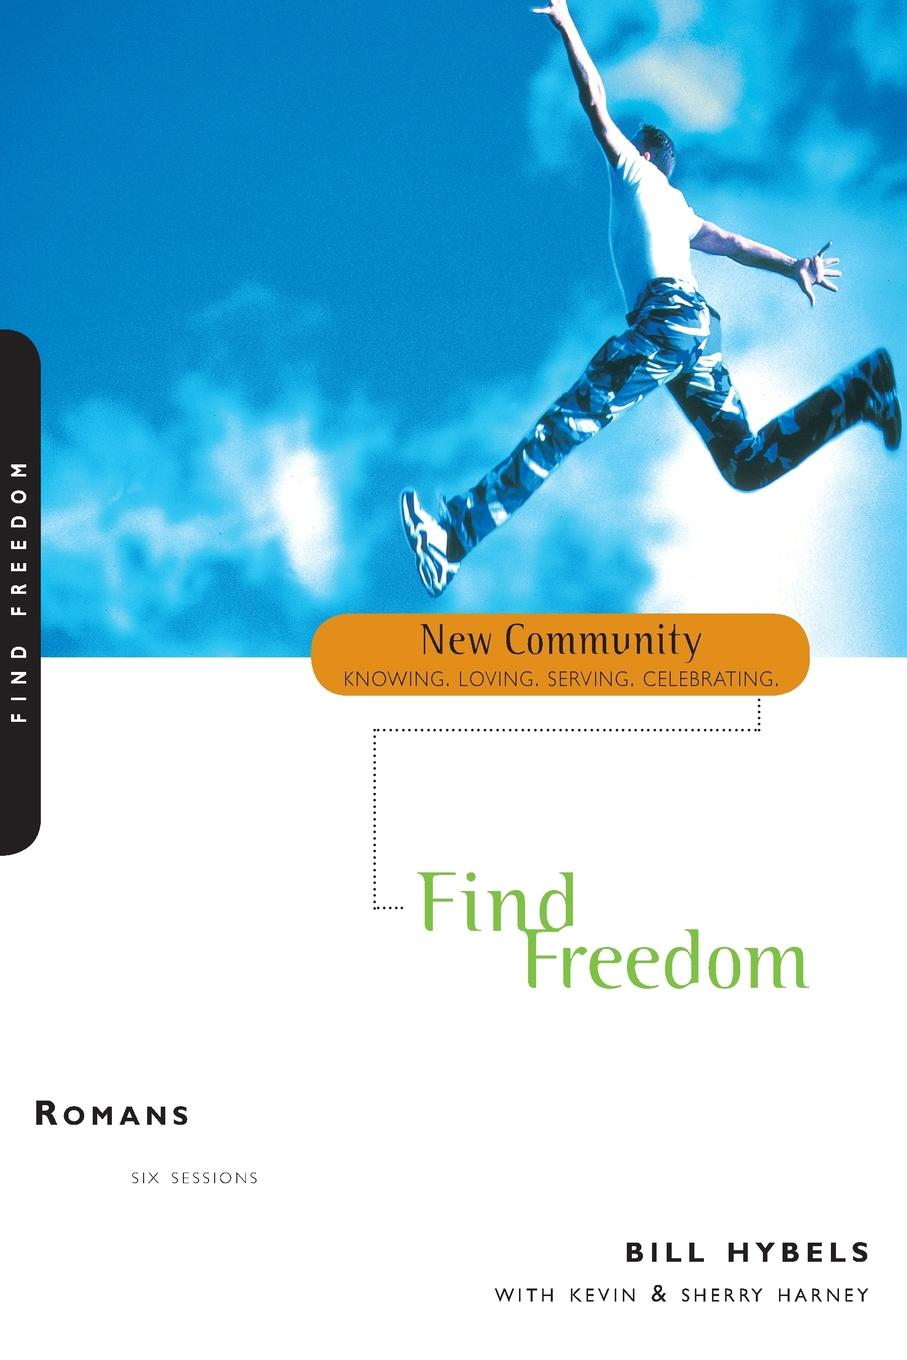 Bill Hybels Romans. Find Freedom